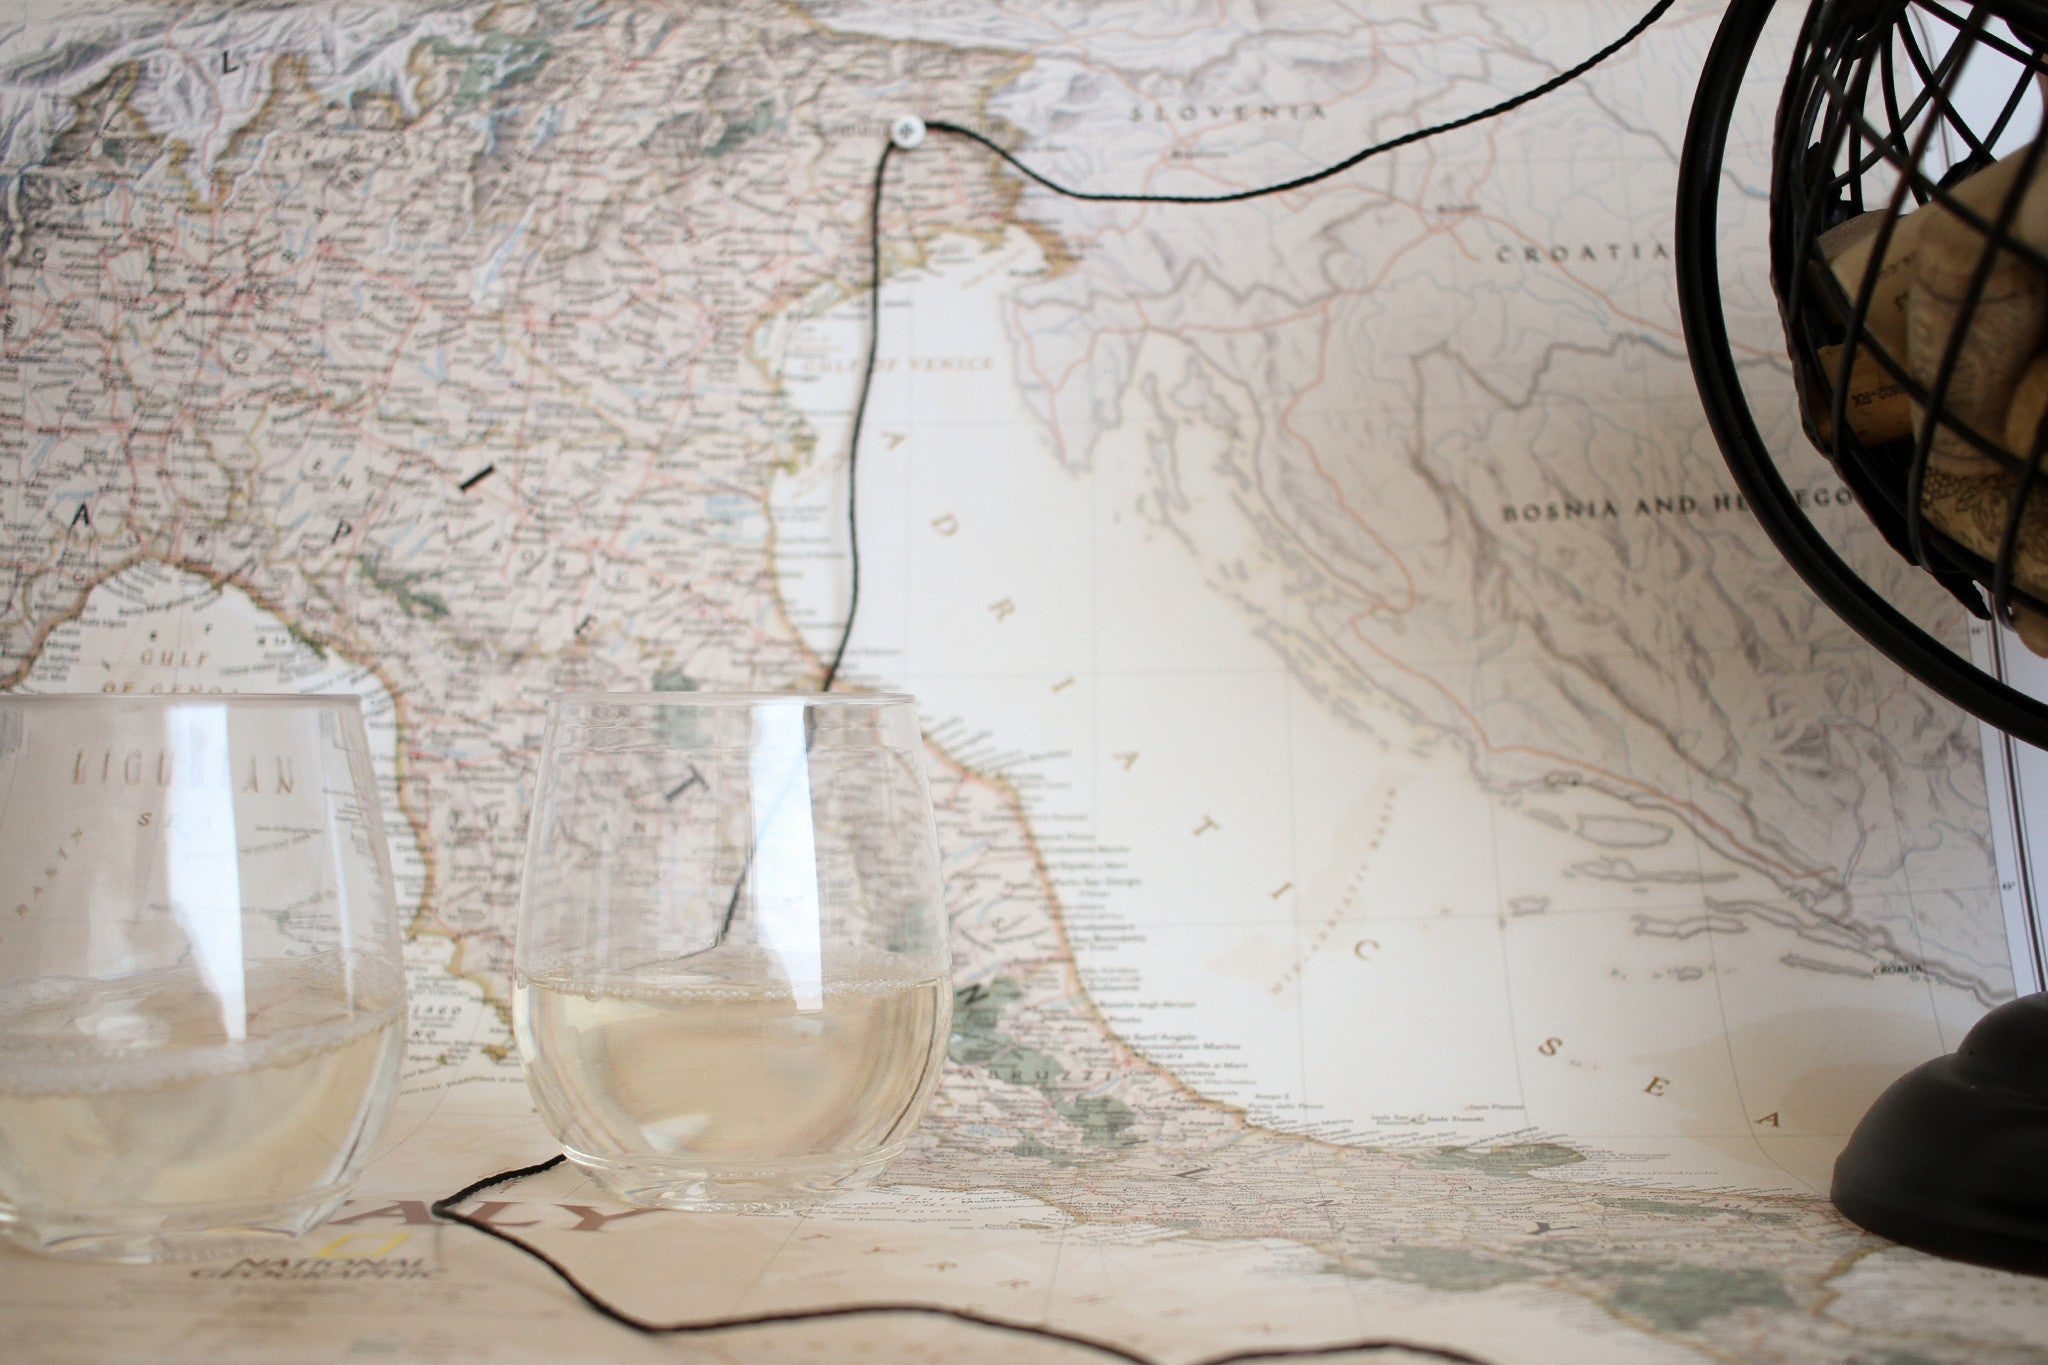 Touring Italy by the Wine Glass, Fiuli-Venezia Giulia, Glass of Fruili, Fruili pairing